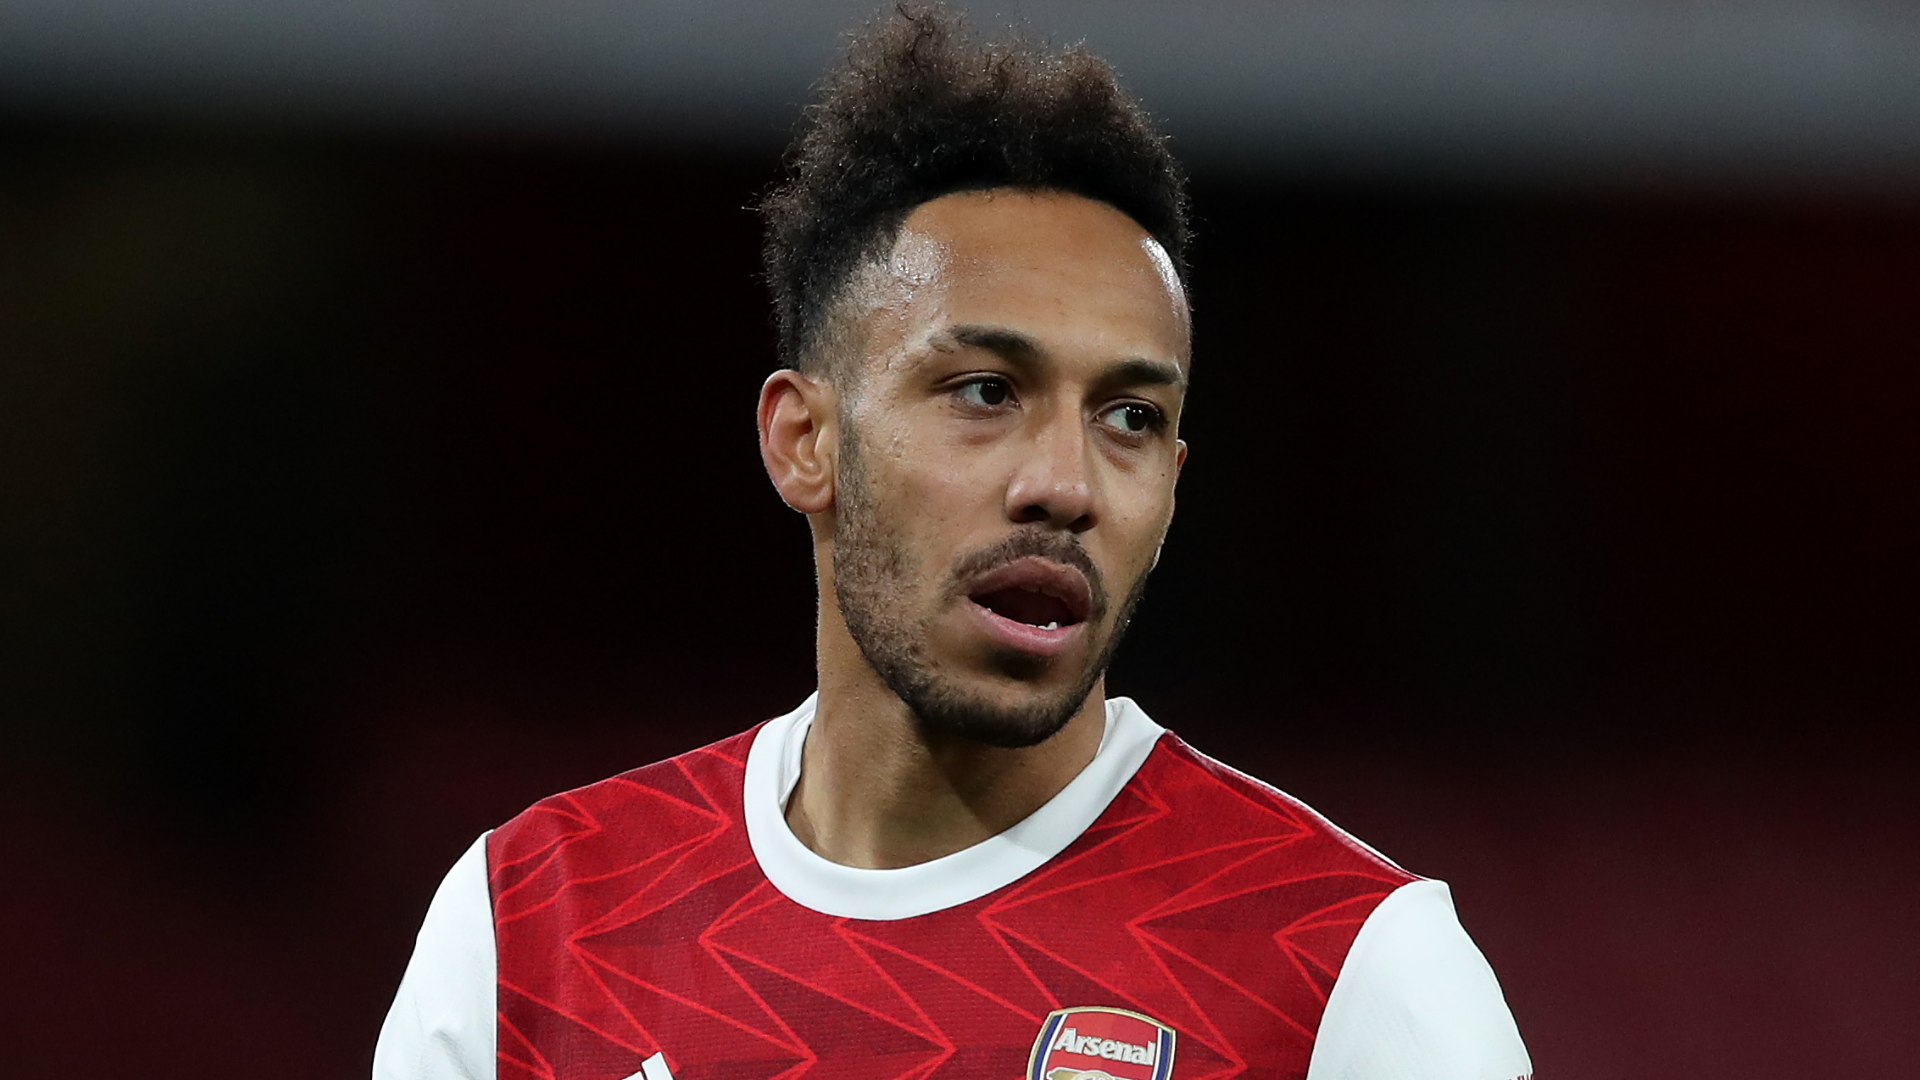 'Aubameyang still below par for Arsenal' – Smith sees misfiring striker searching for a spark